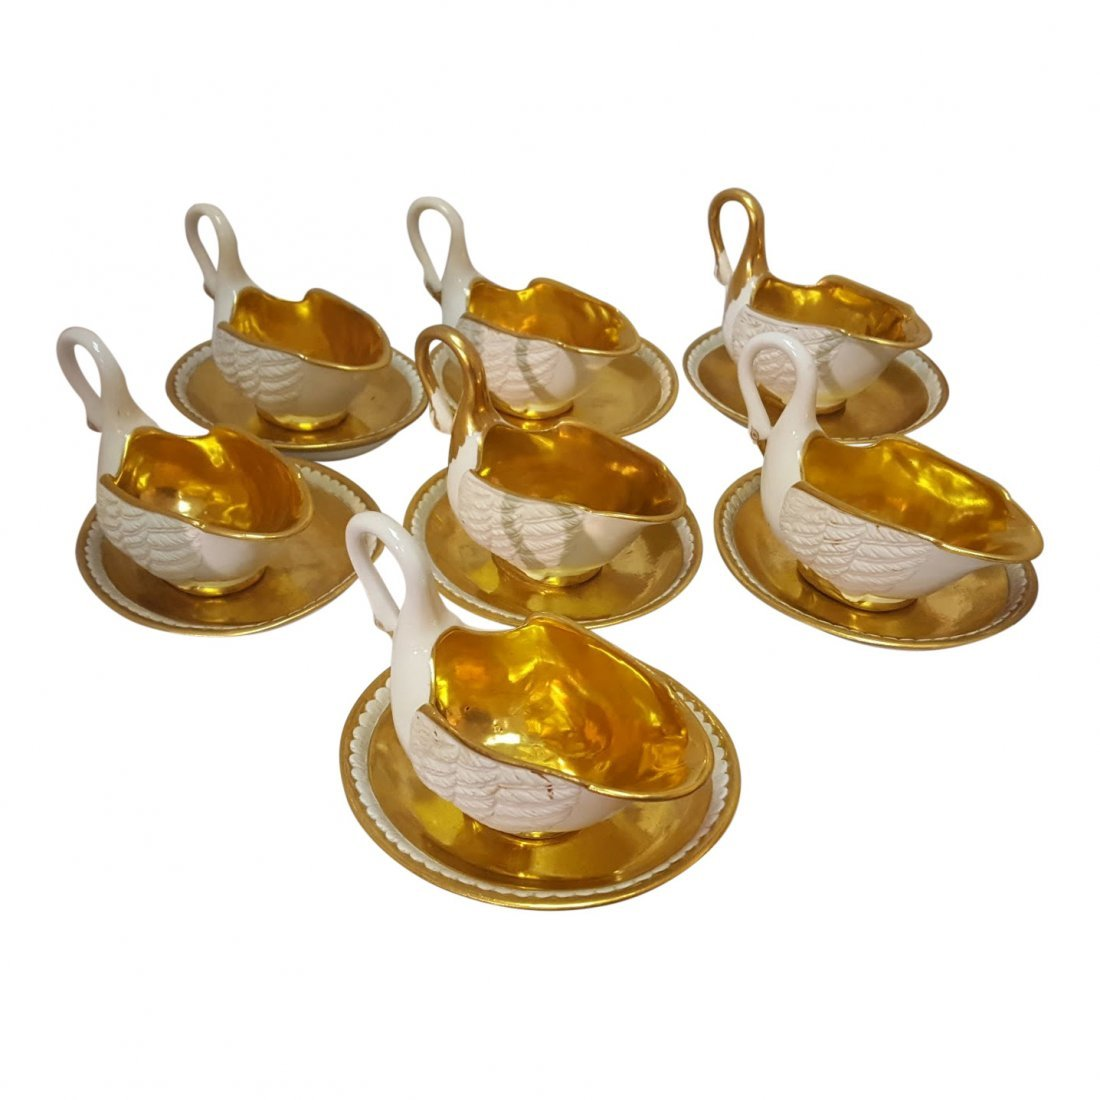 Set of 7 Porcelain Gilded Swan Cups With Saucers, 1810